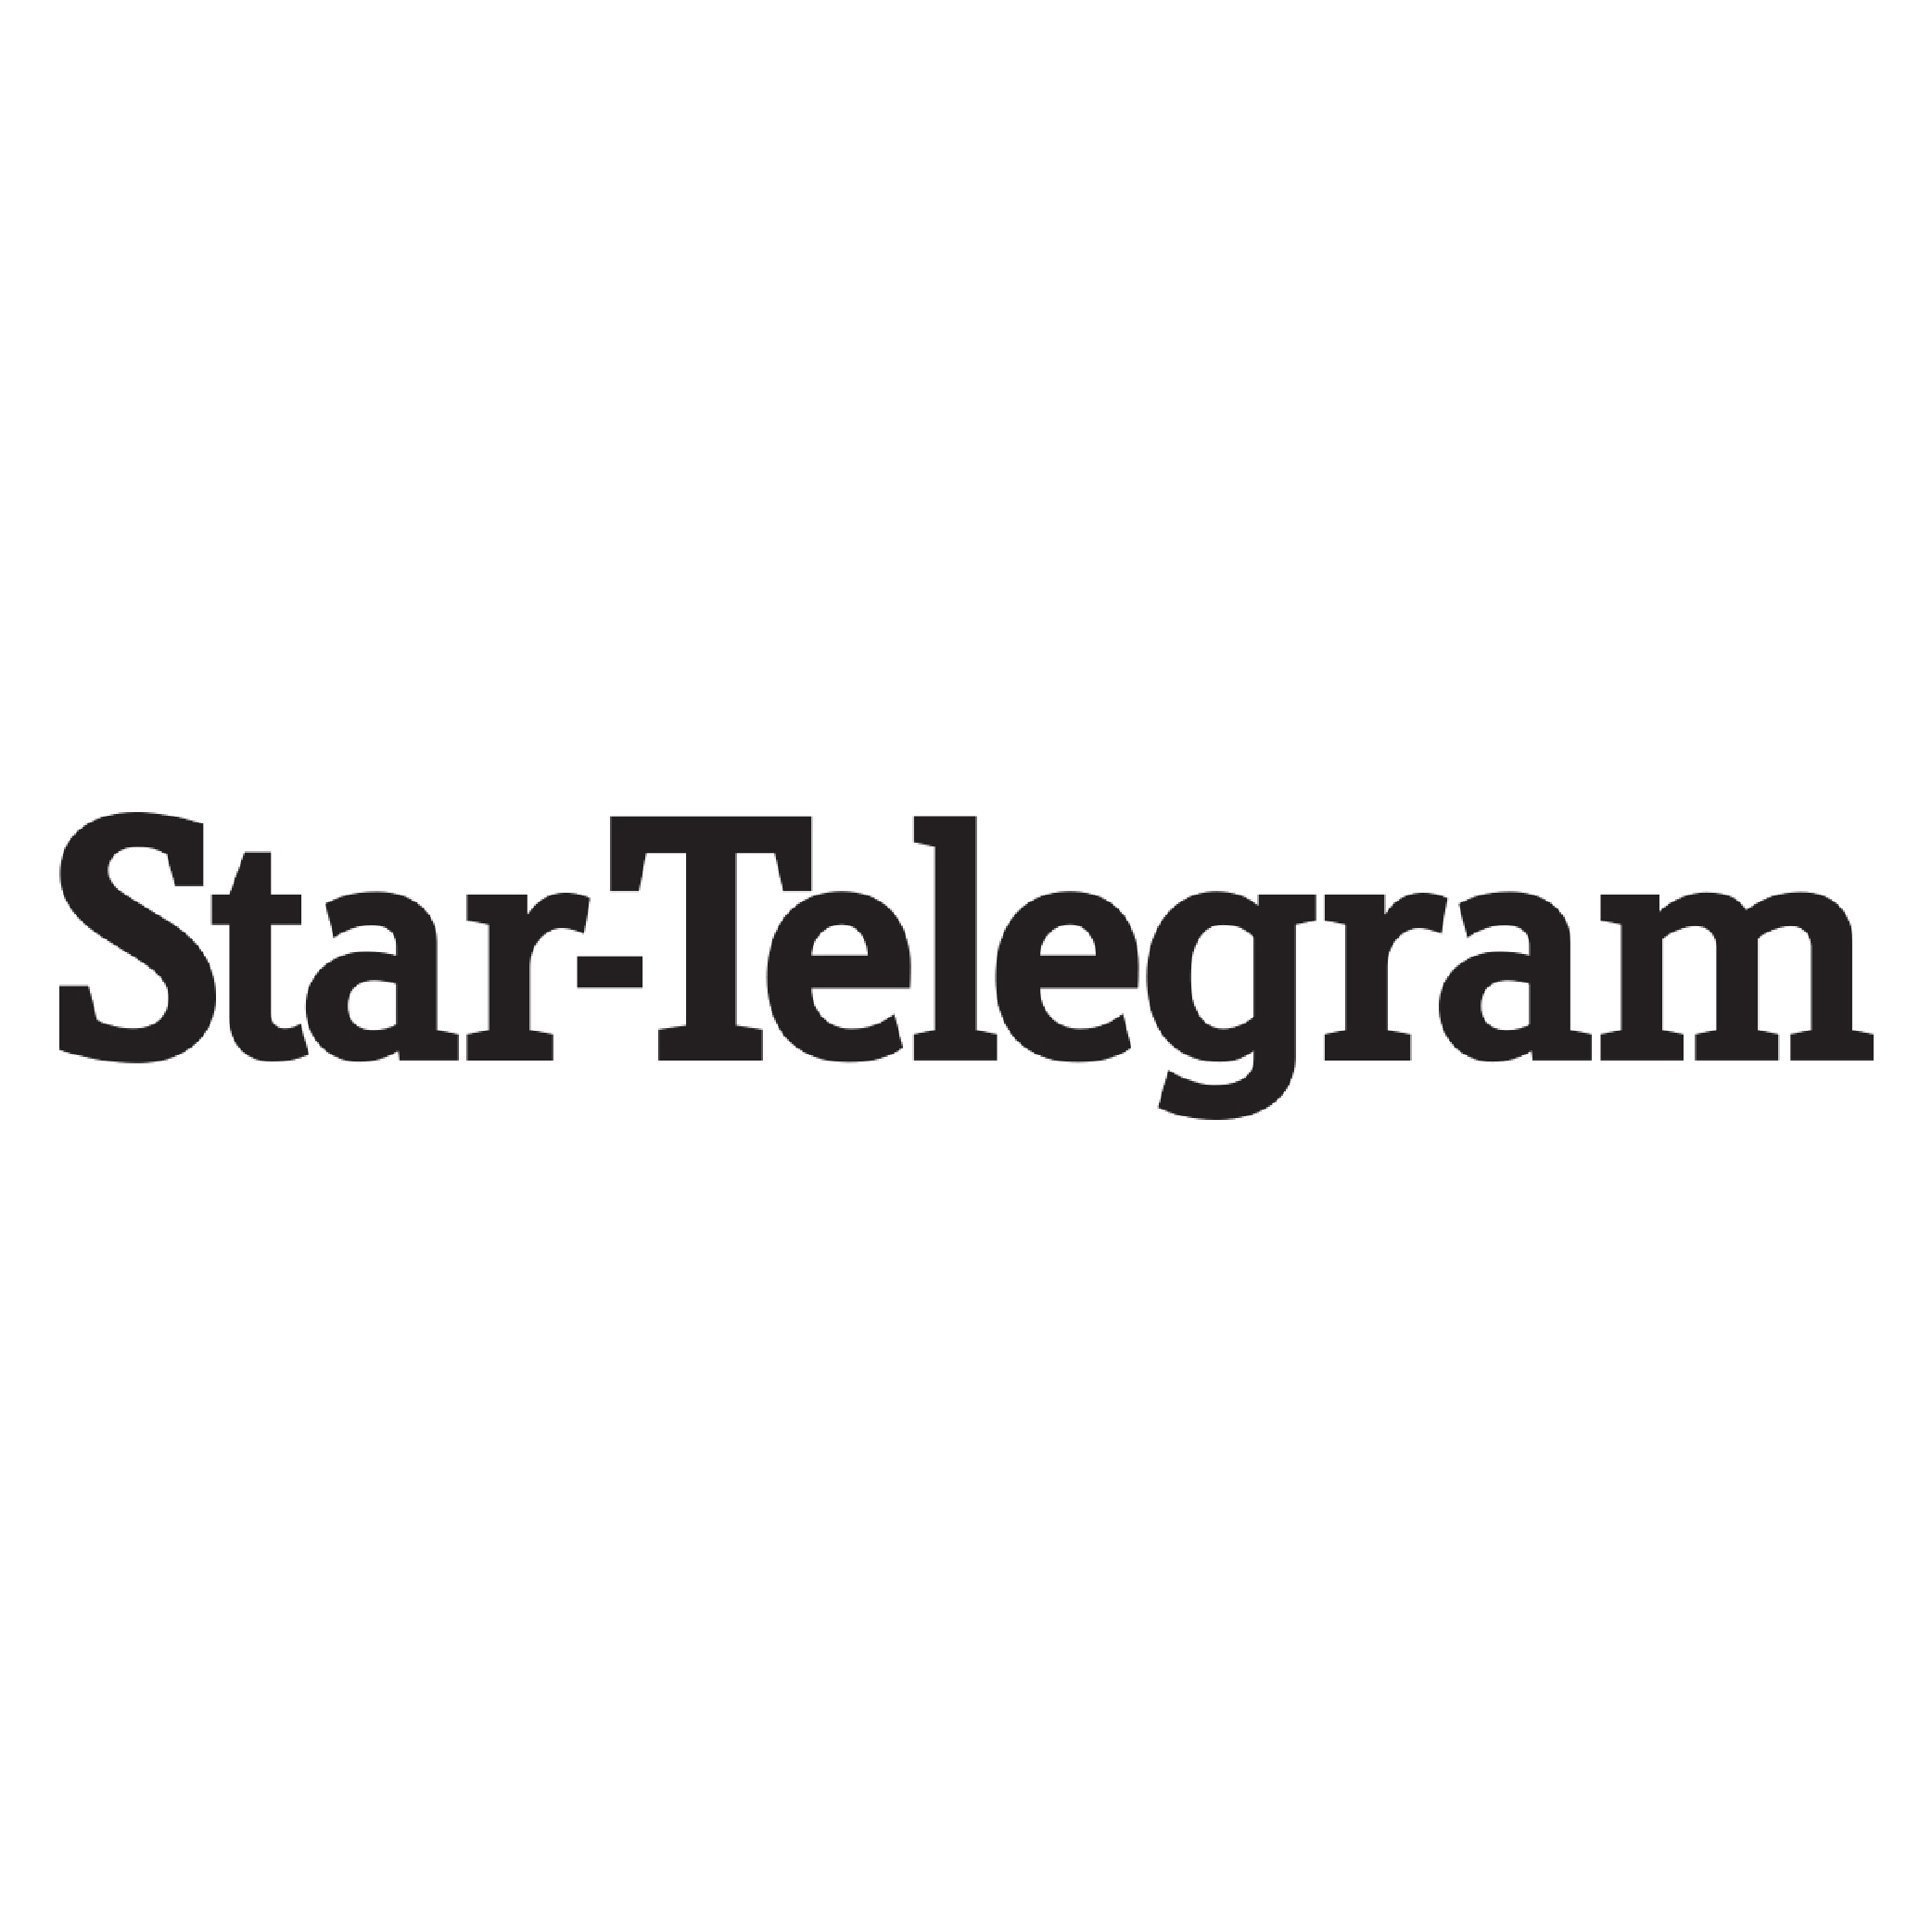 Star-Telegram-01.png